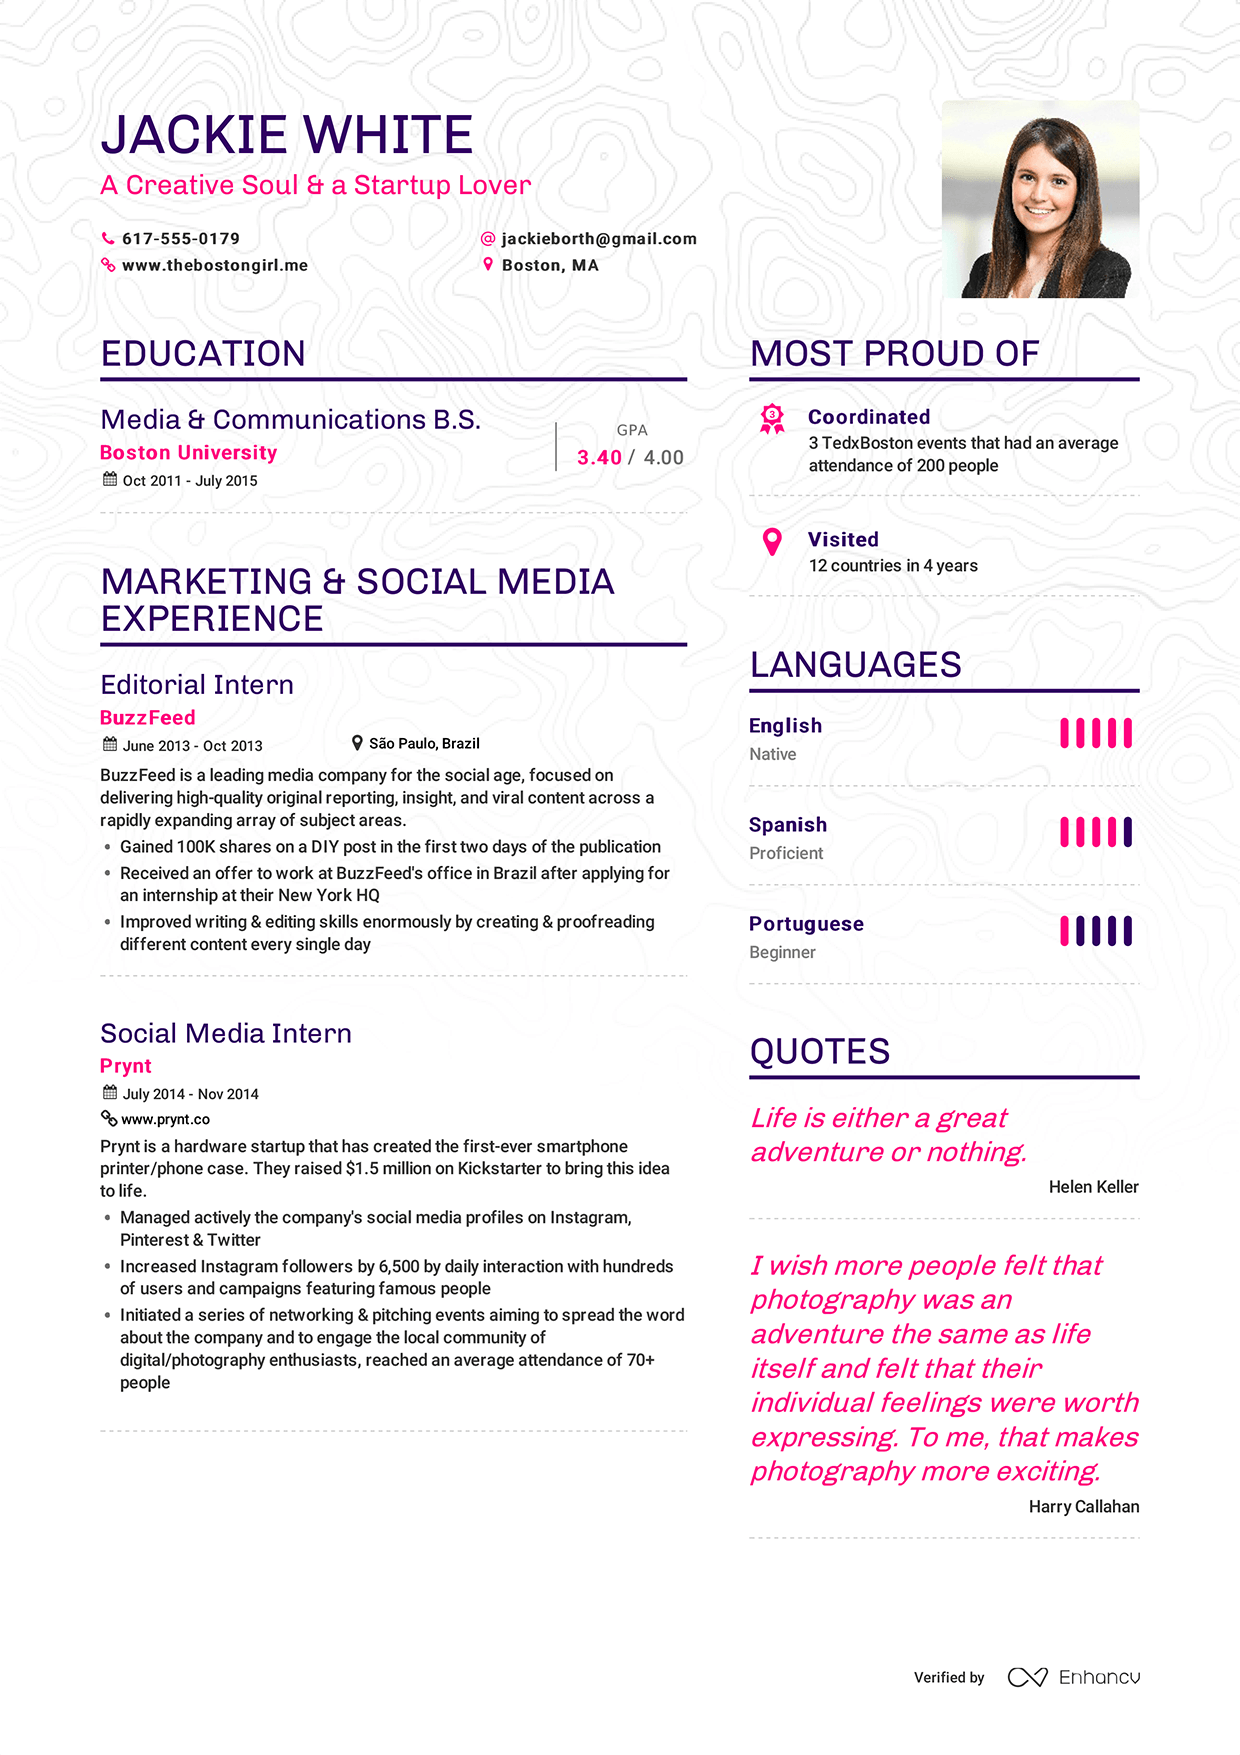 resume Examples Of Resumes examples of resumes by enhancv jackie white resume page 1